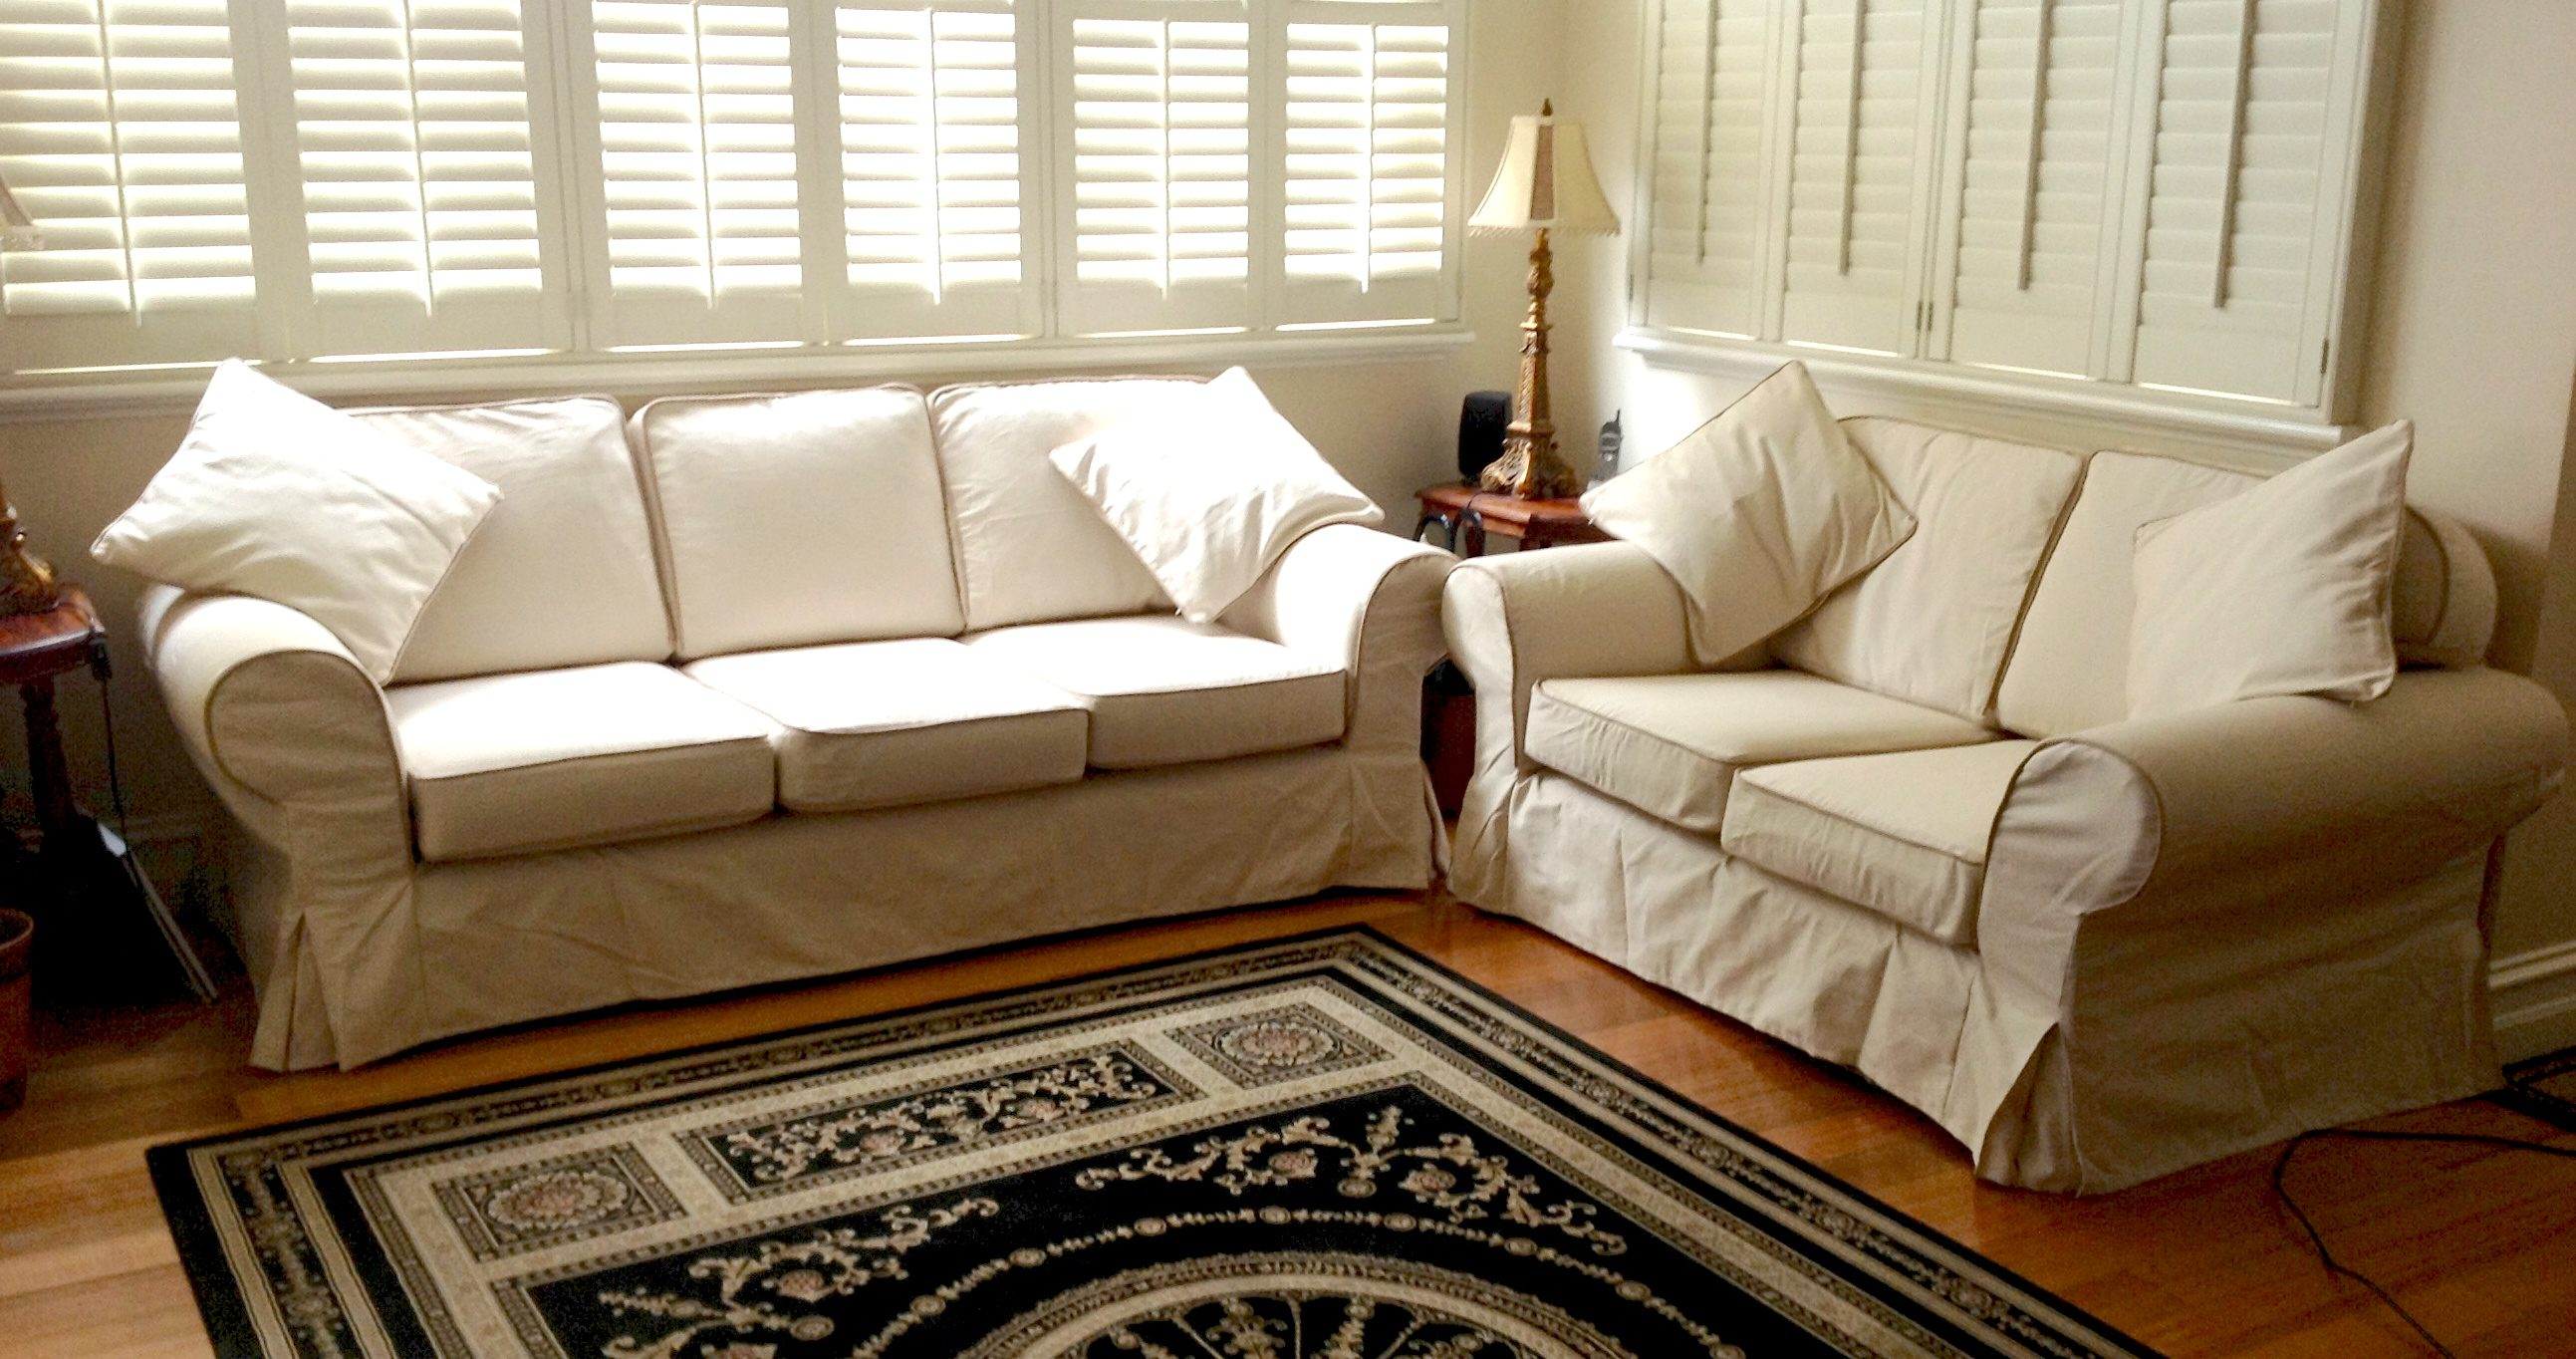 Custom slipcovers and couch cover for any sofa online Couch and loveseat covers